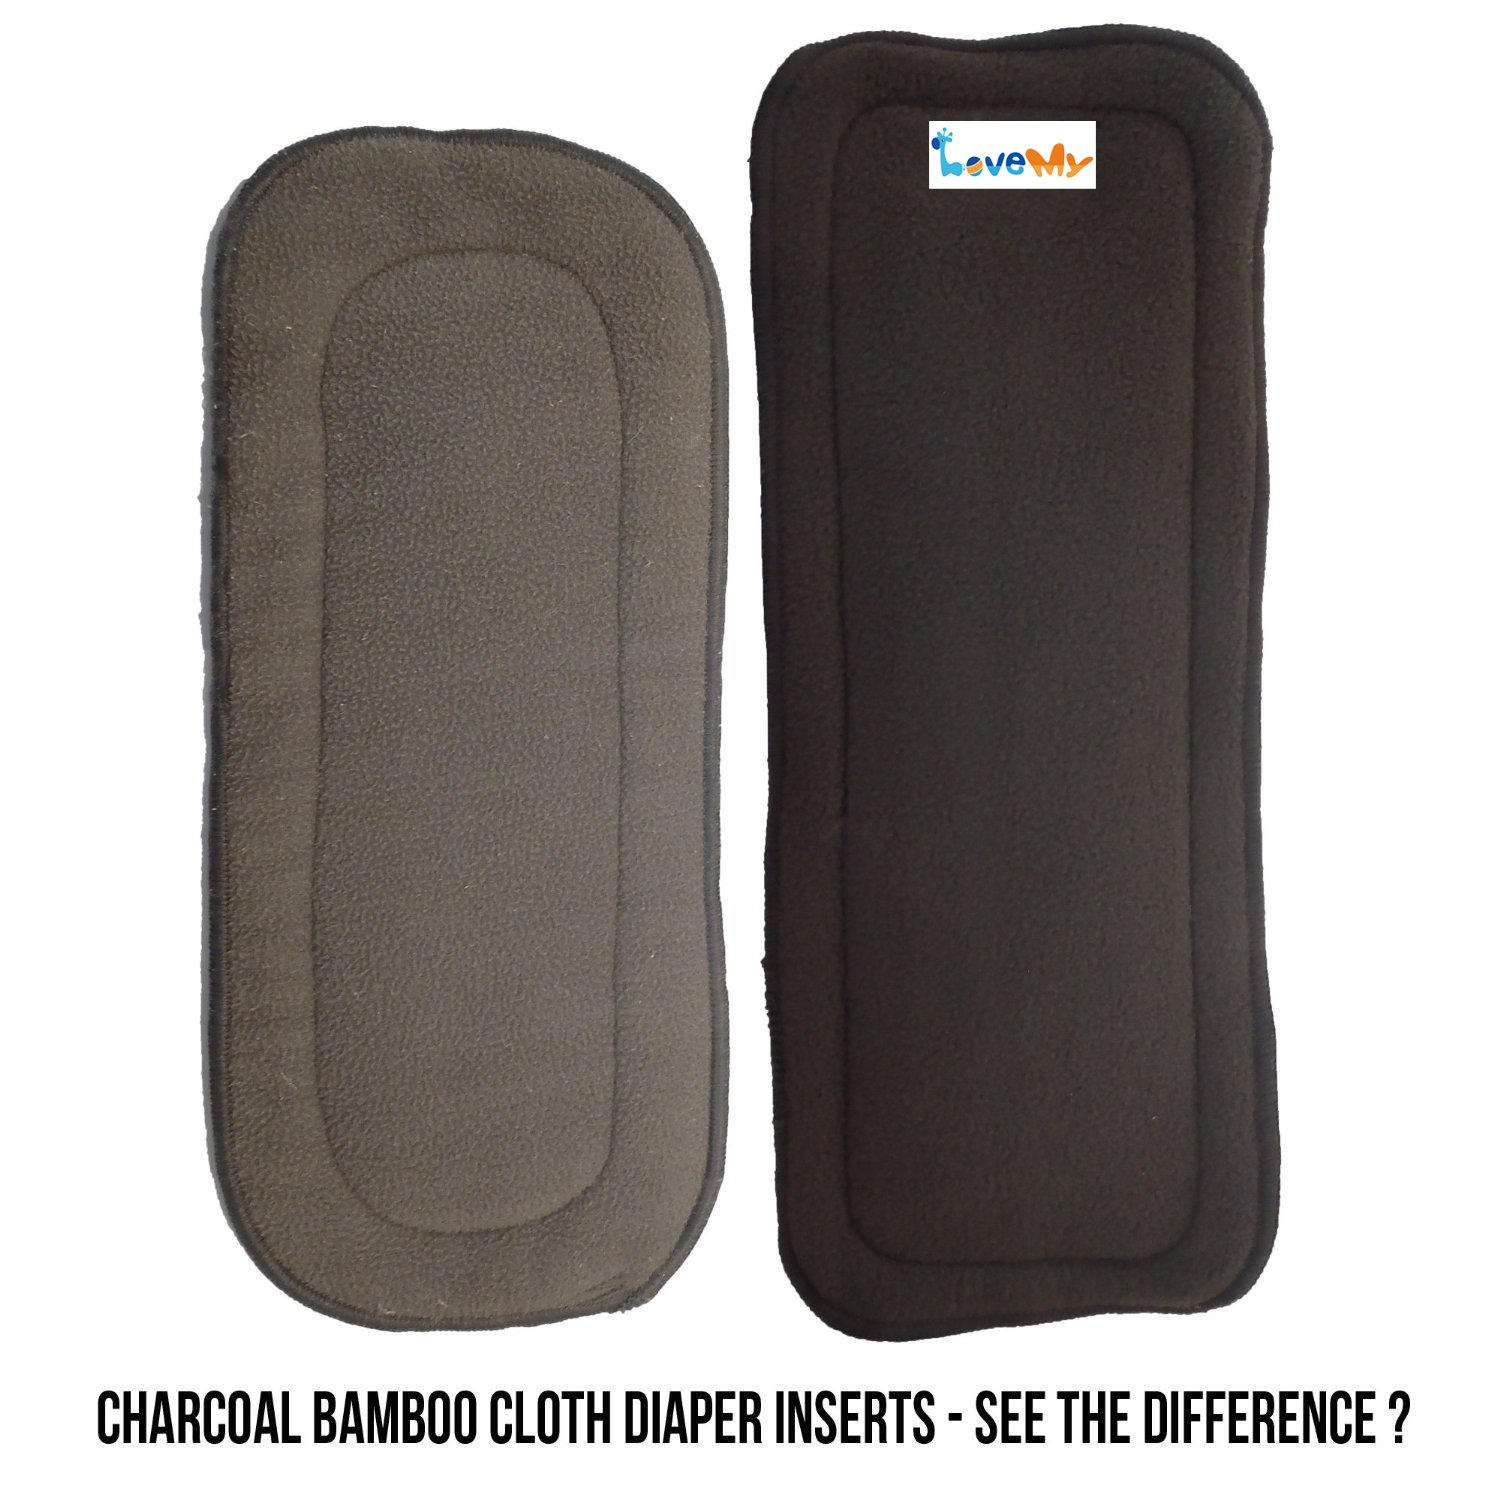 Baby 5 Layer Charcoal Bamboo Inserts Reusable Liners for Cloth Diapers Inserts 6 Pieces by LOVEMY